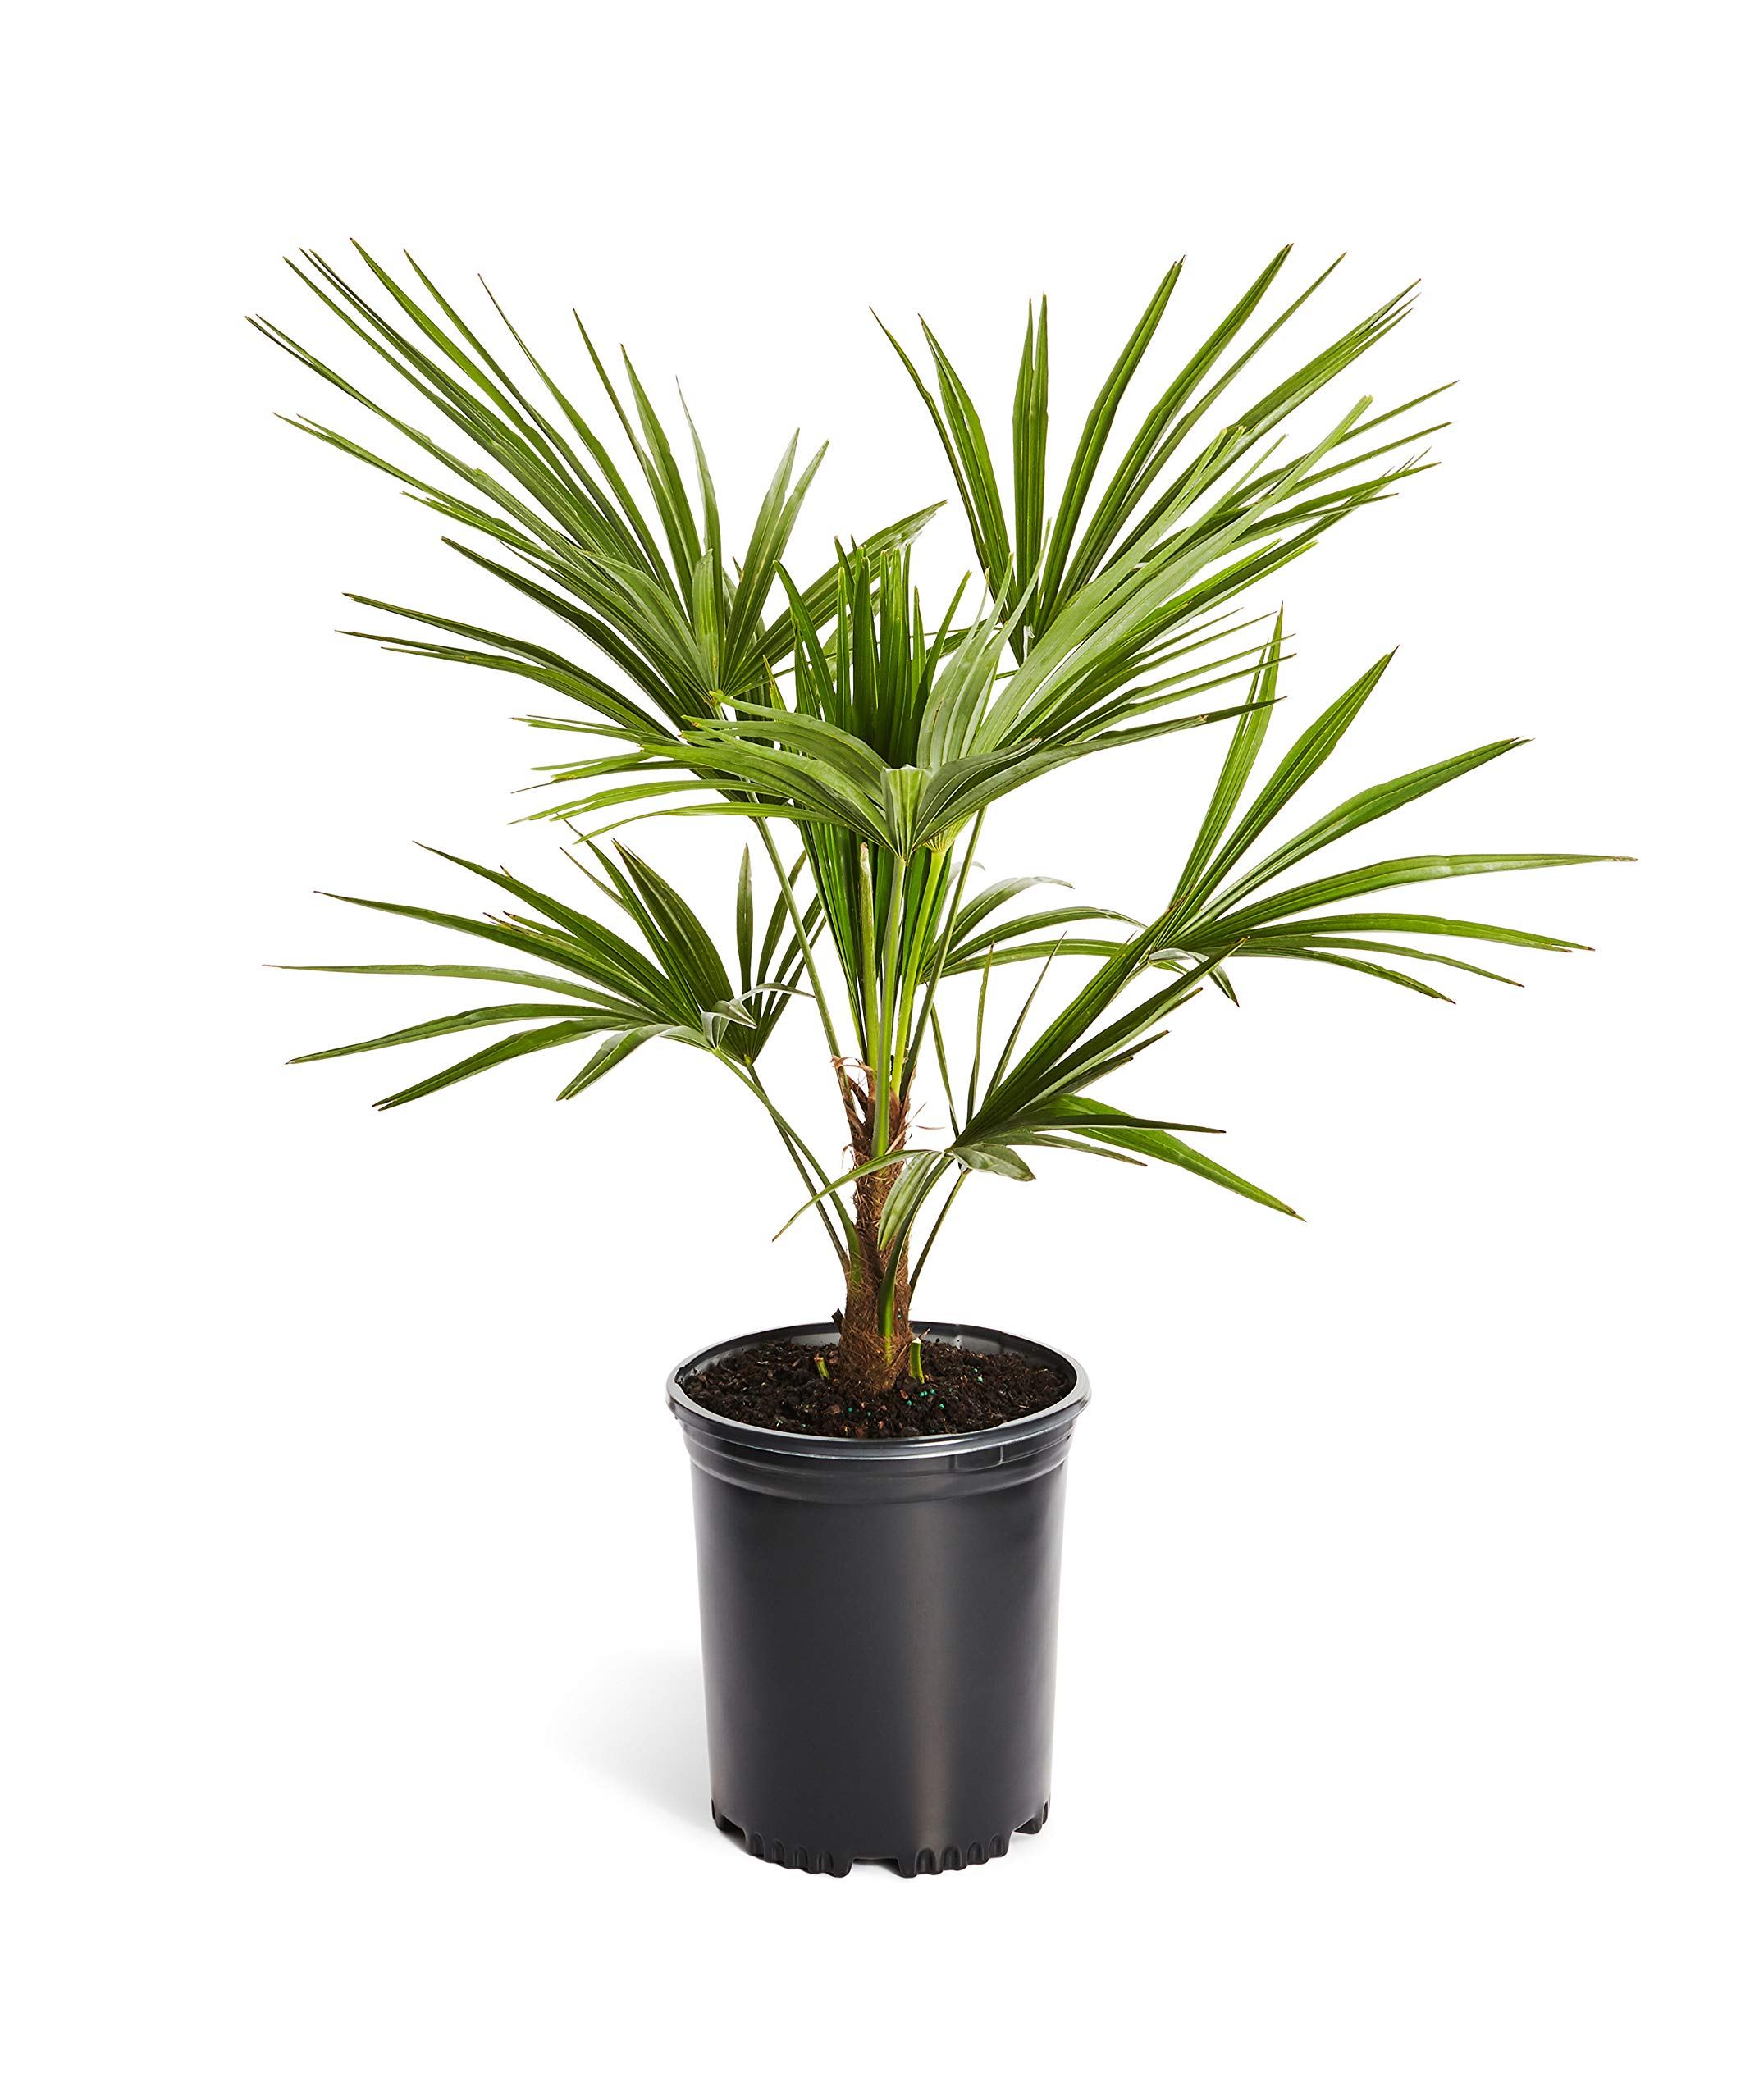 Garden Palm Trees How To Plant Care